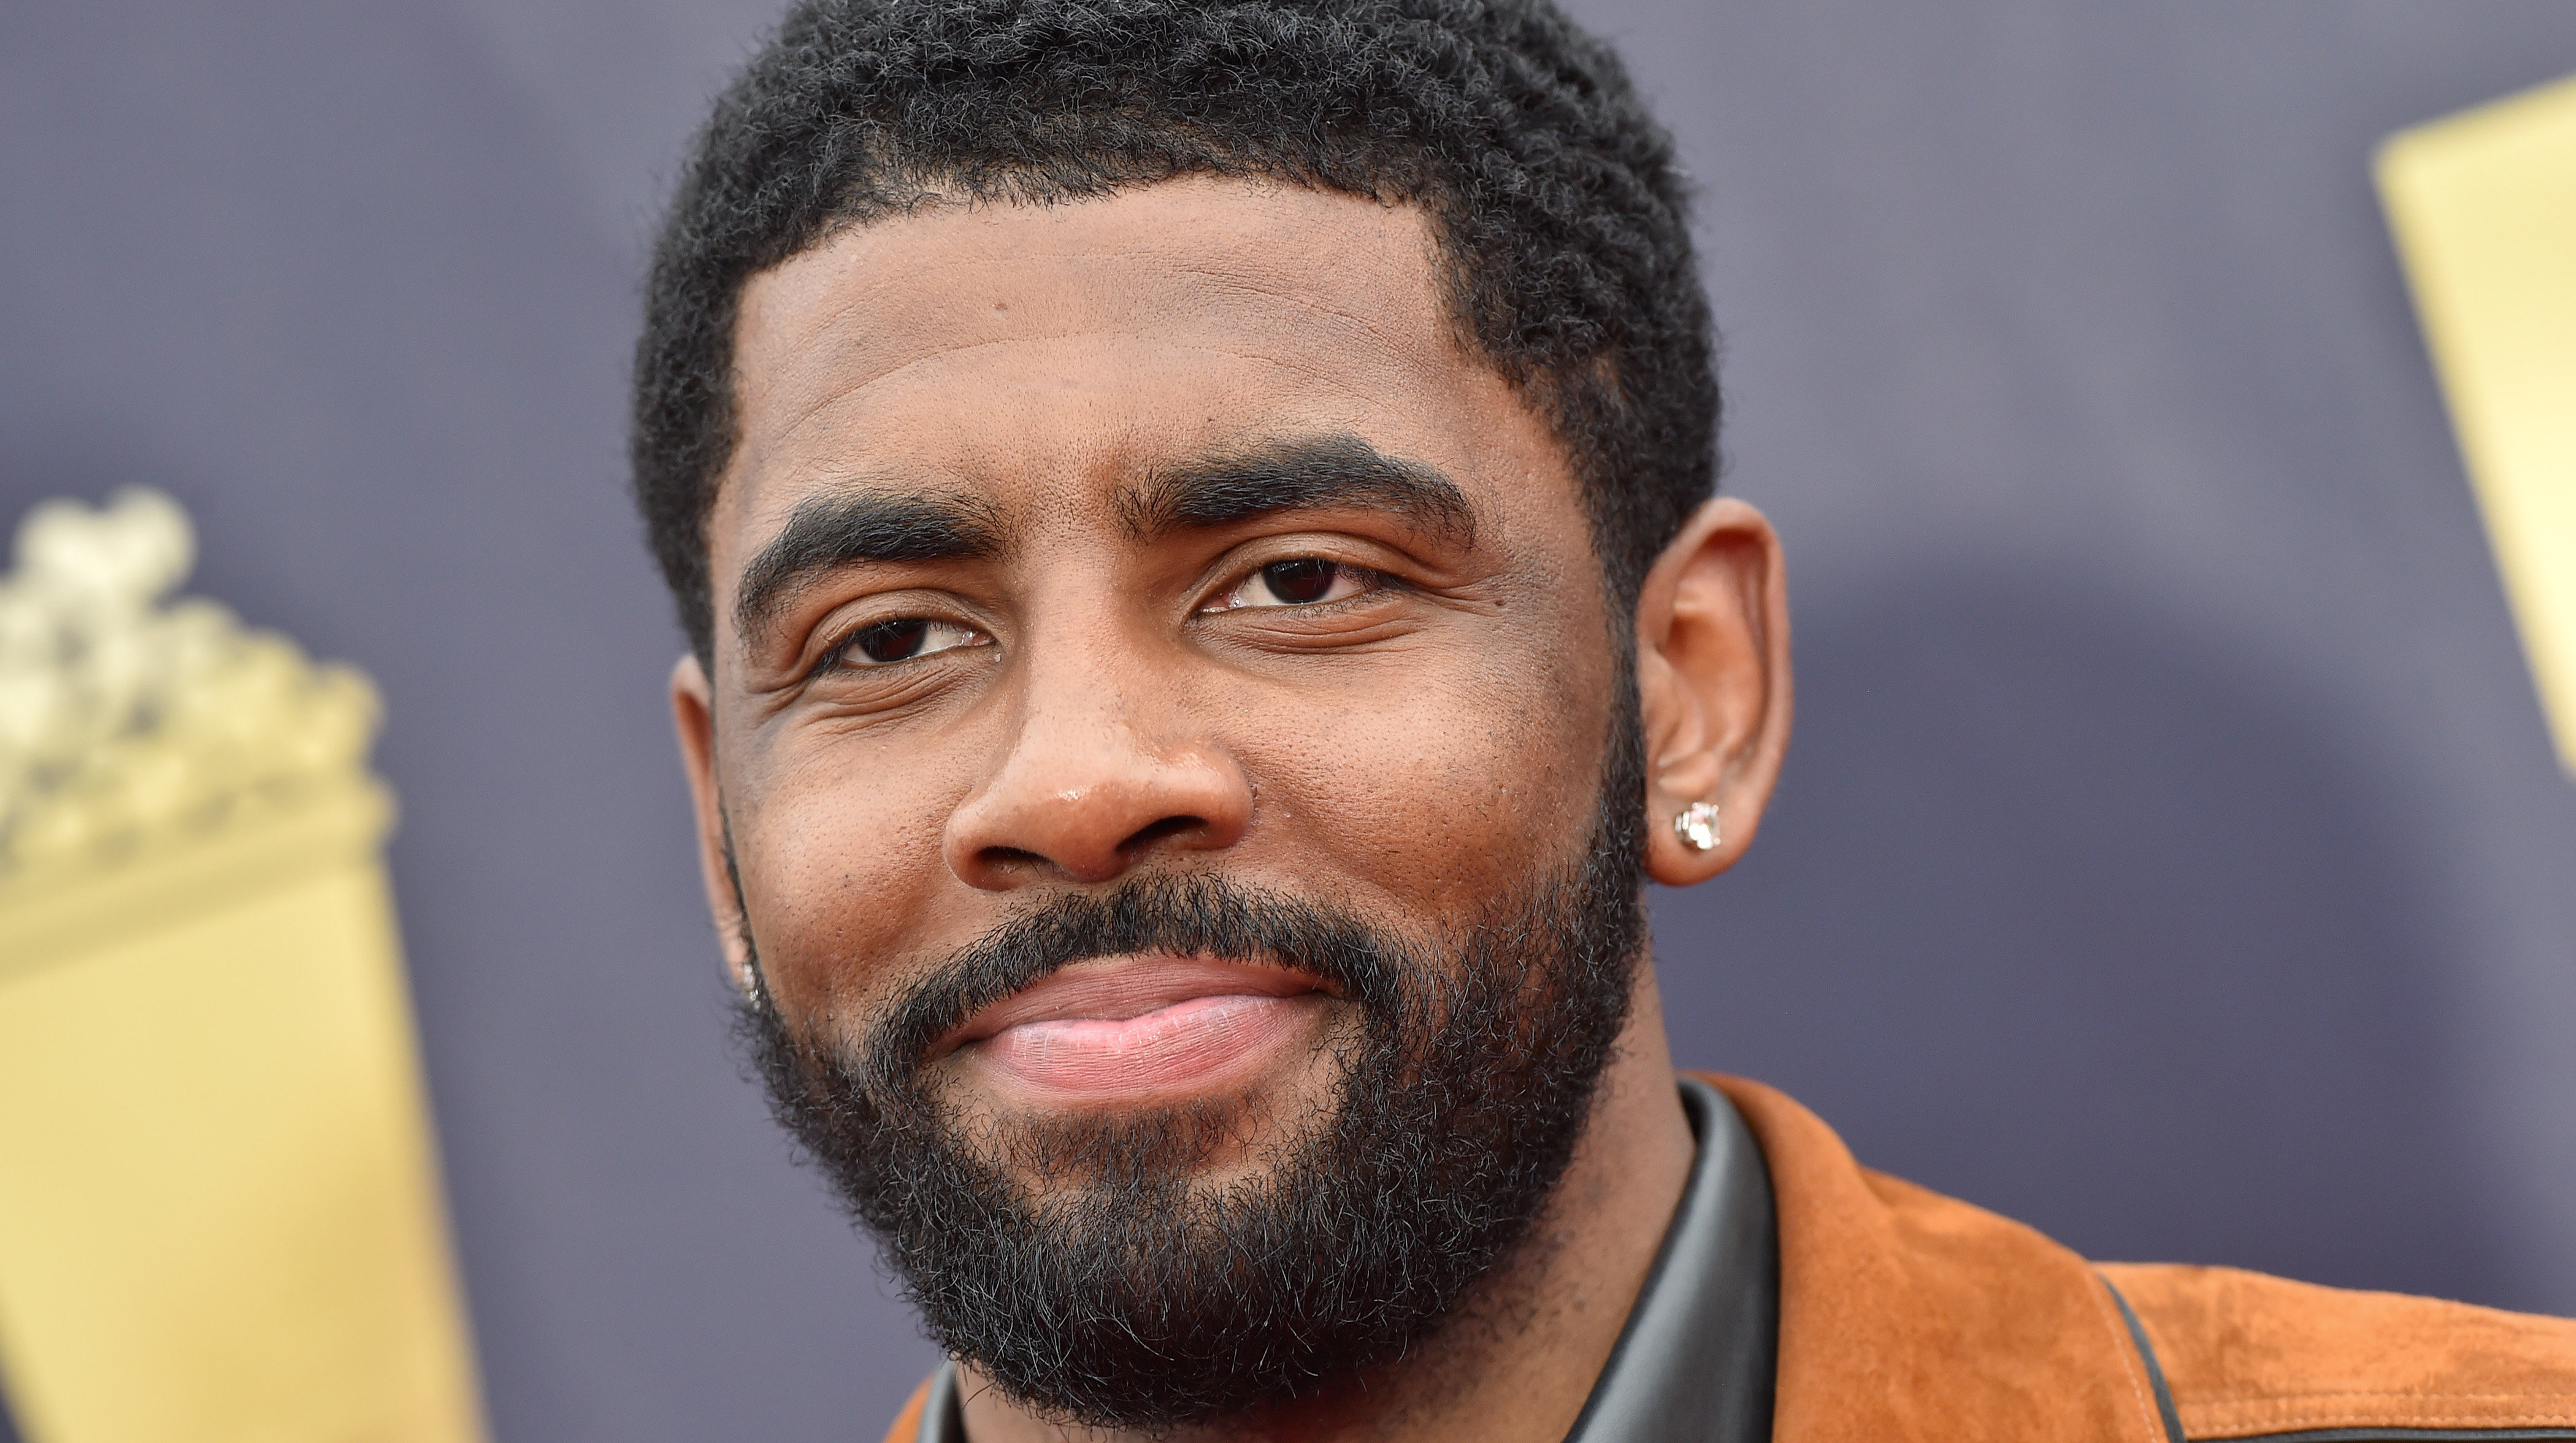 Kyrie Irving Wishes He Had Never Said The World Is Flat